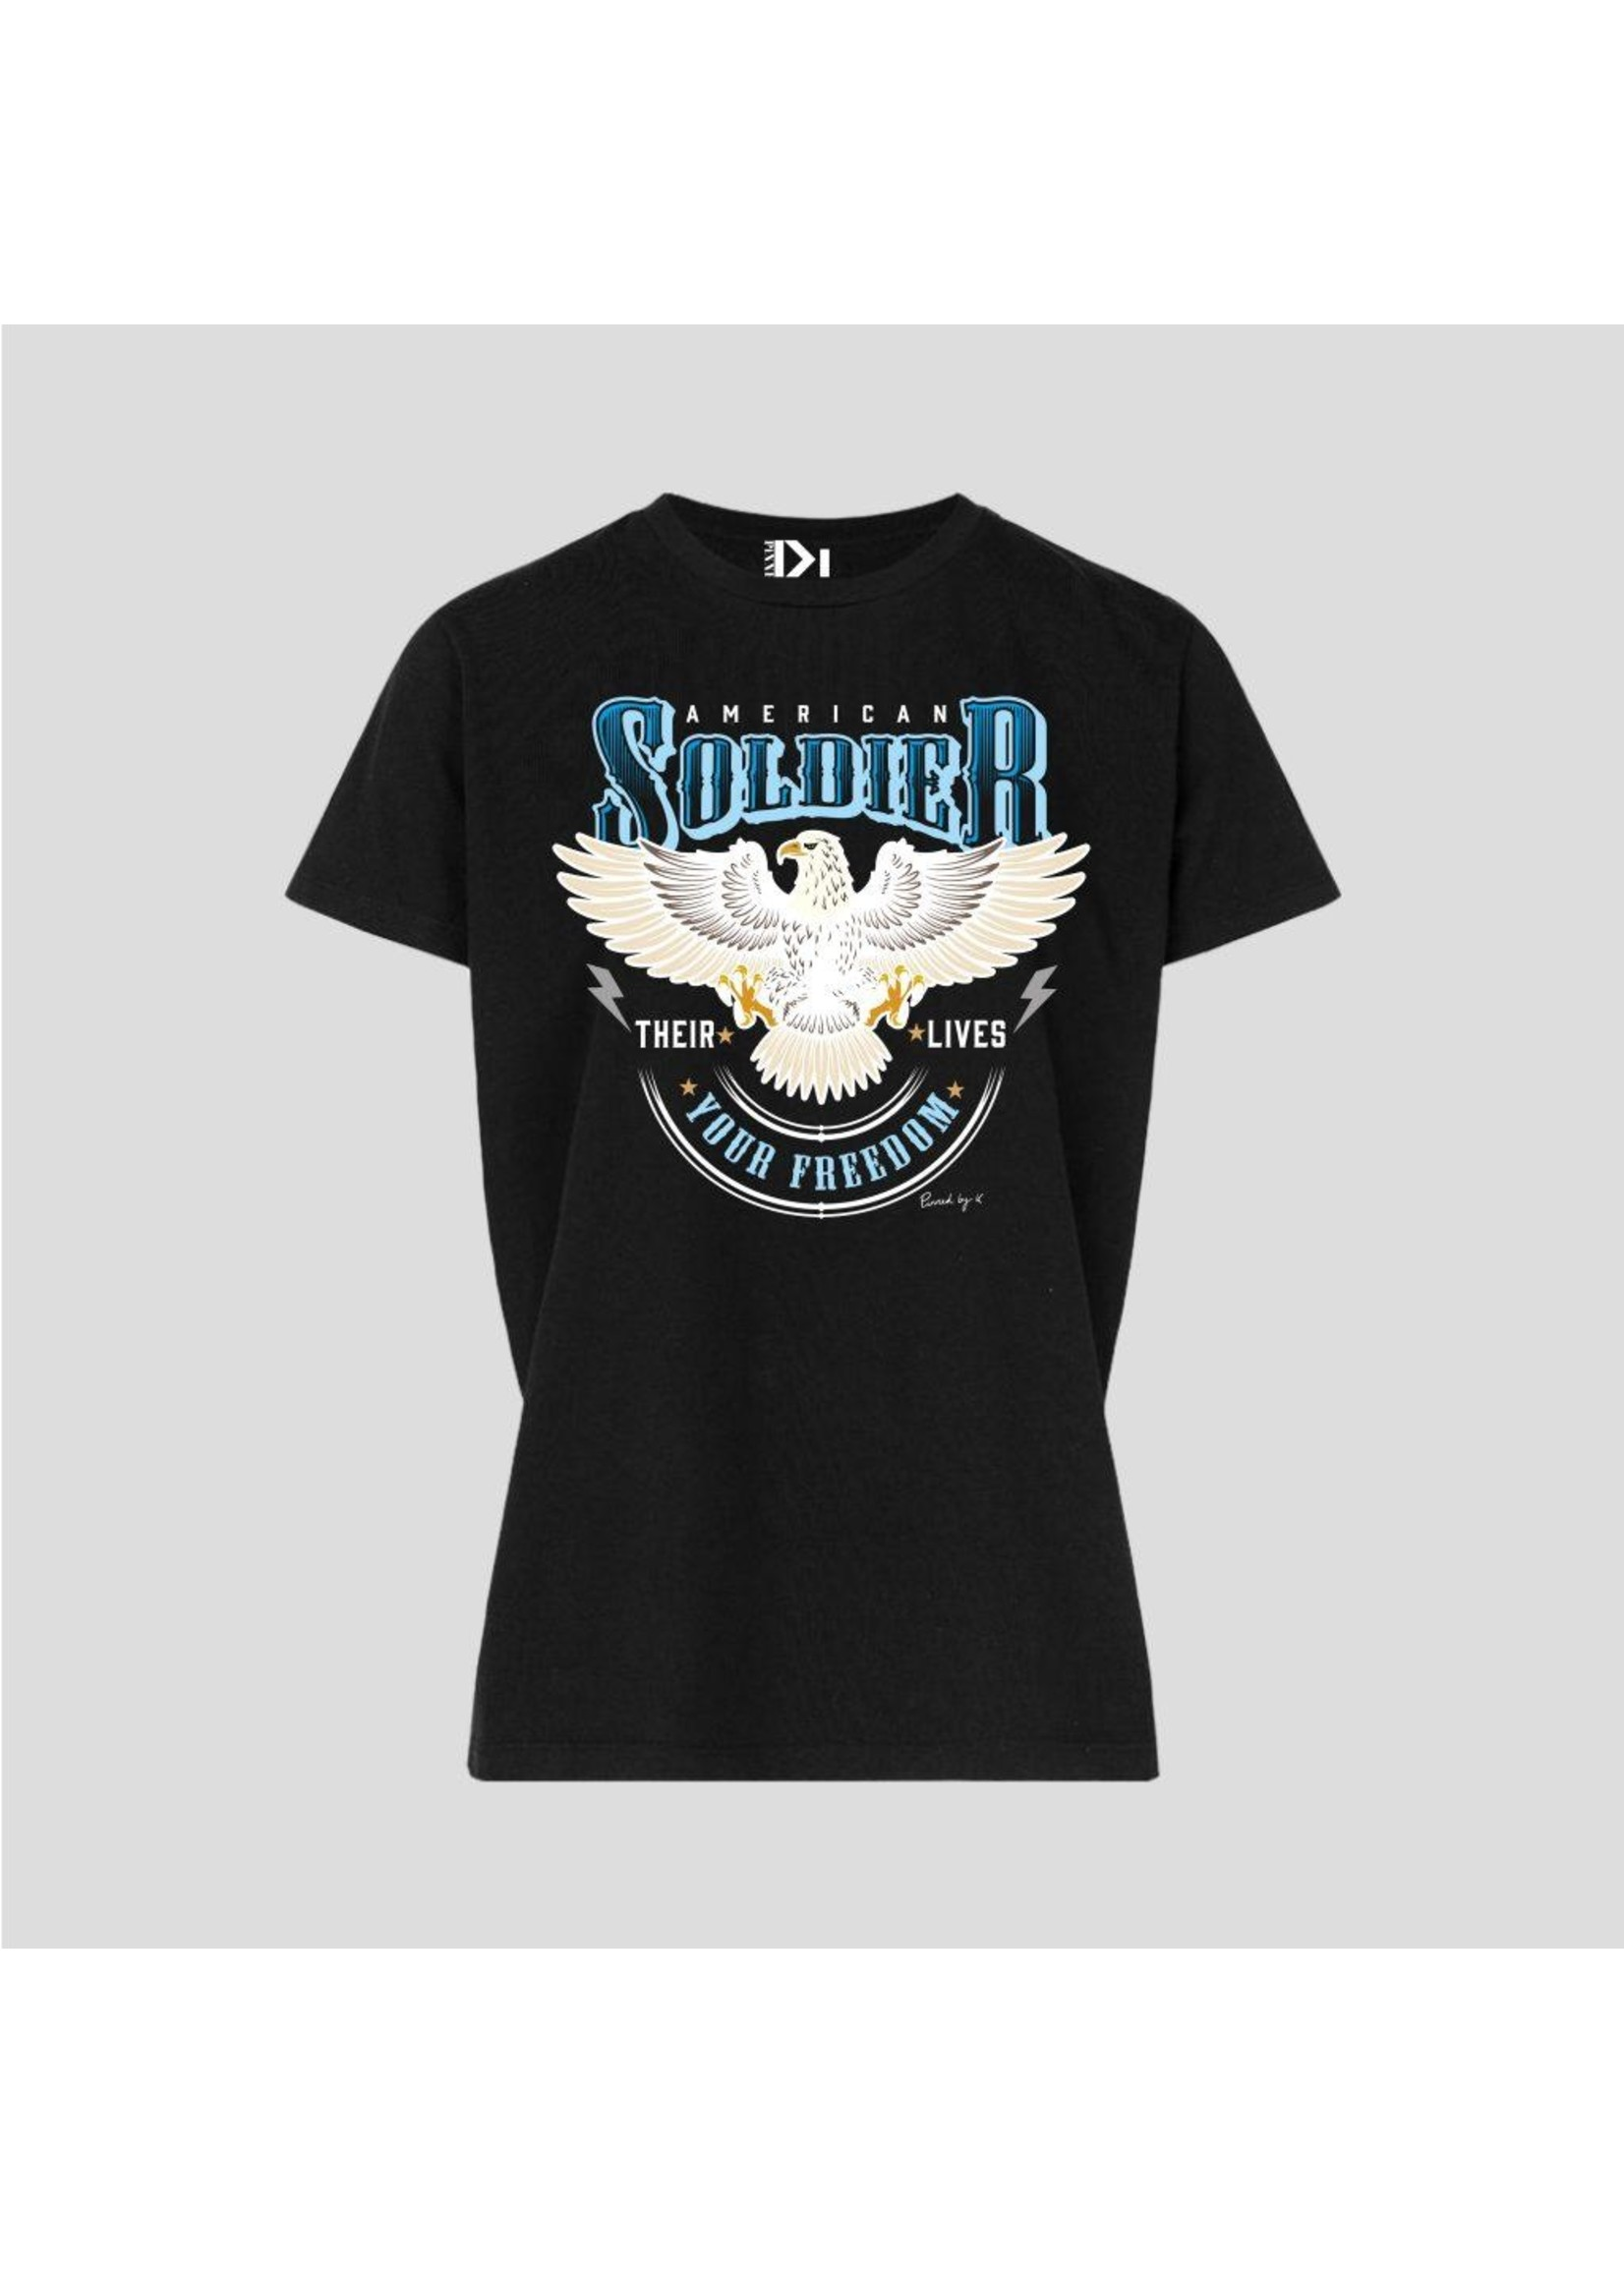 Pinned by K T-shirt white american soldier black